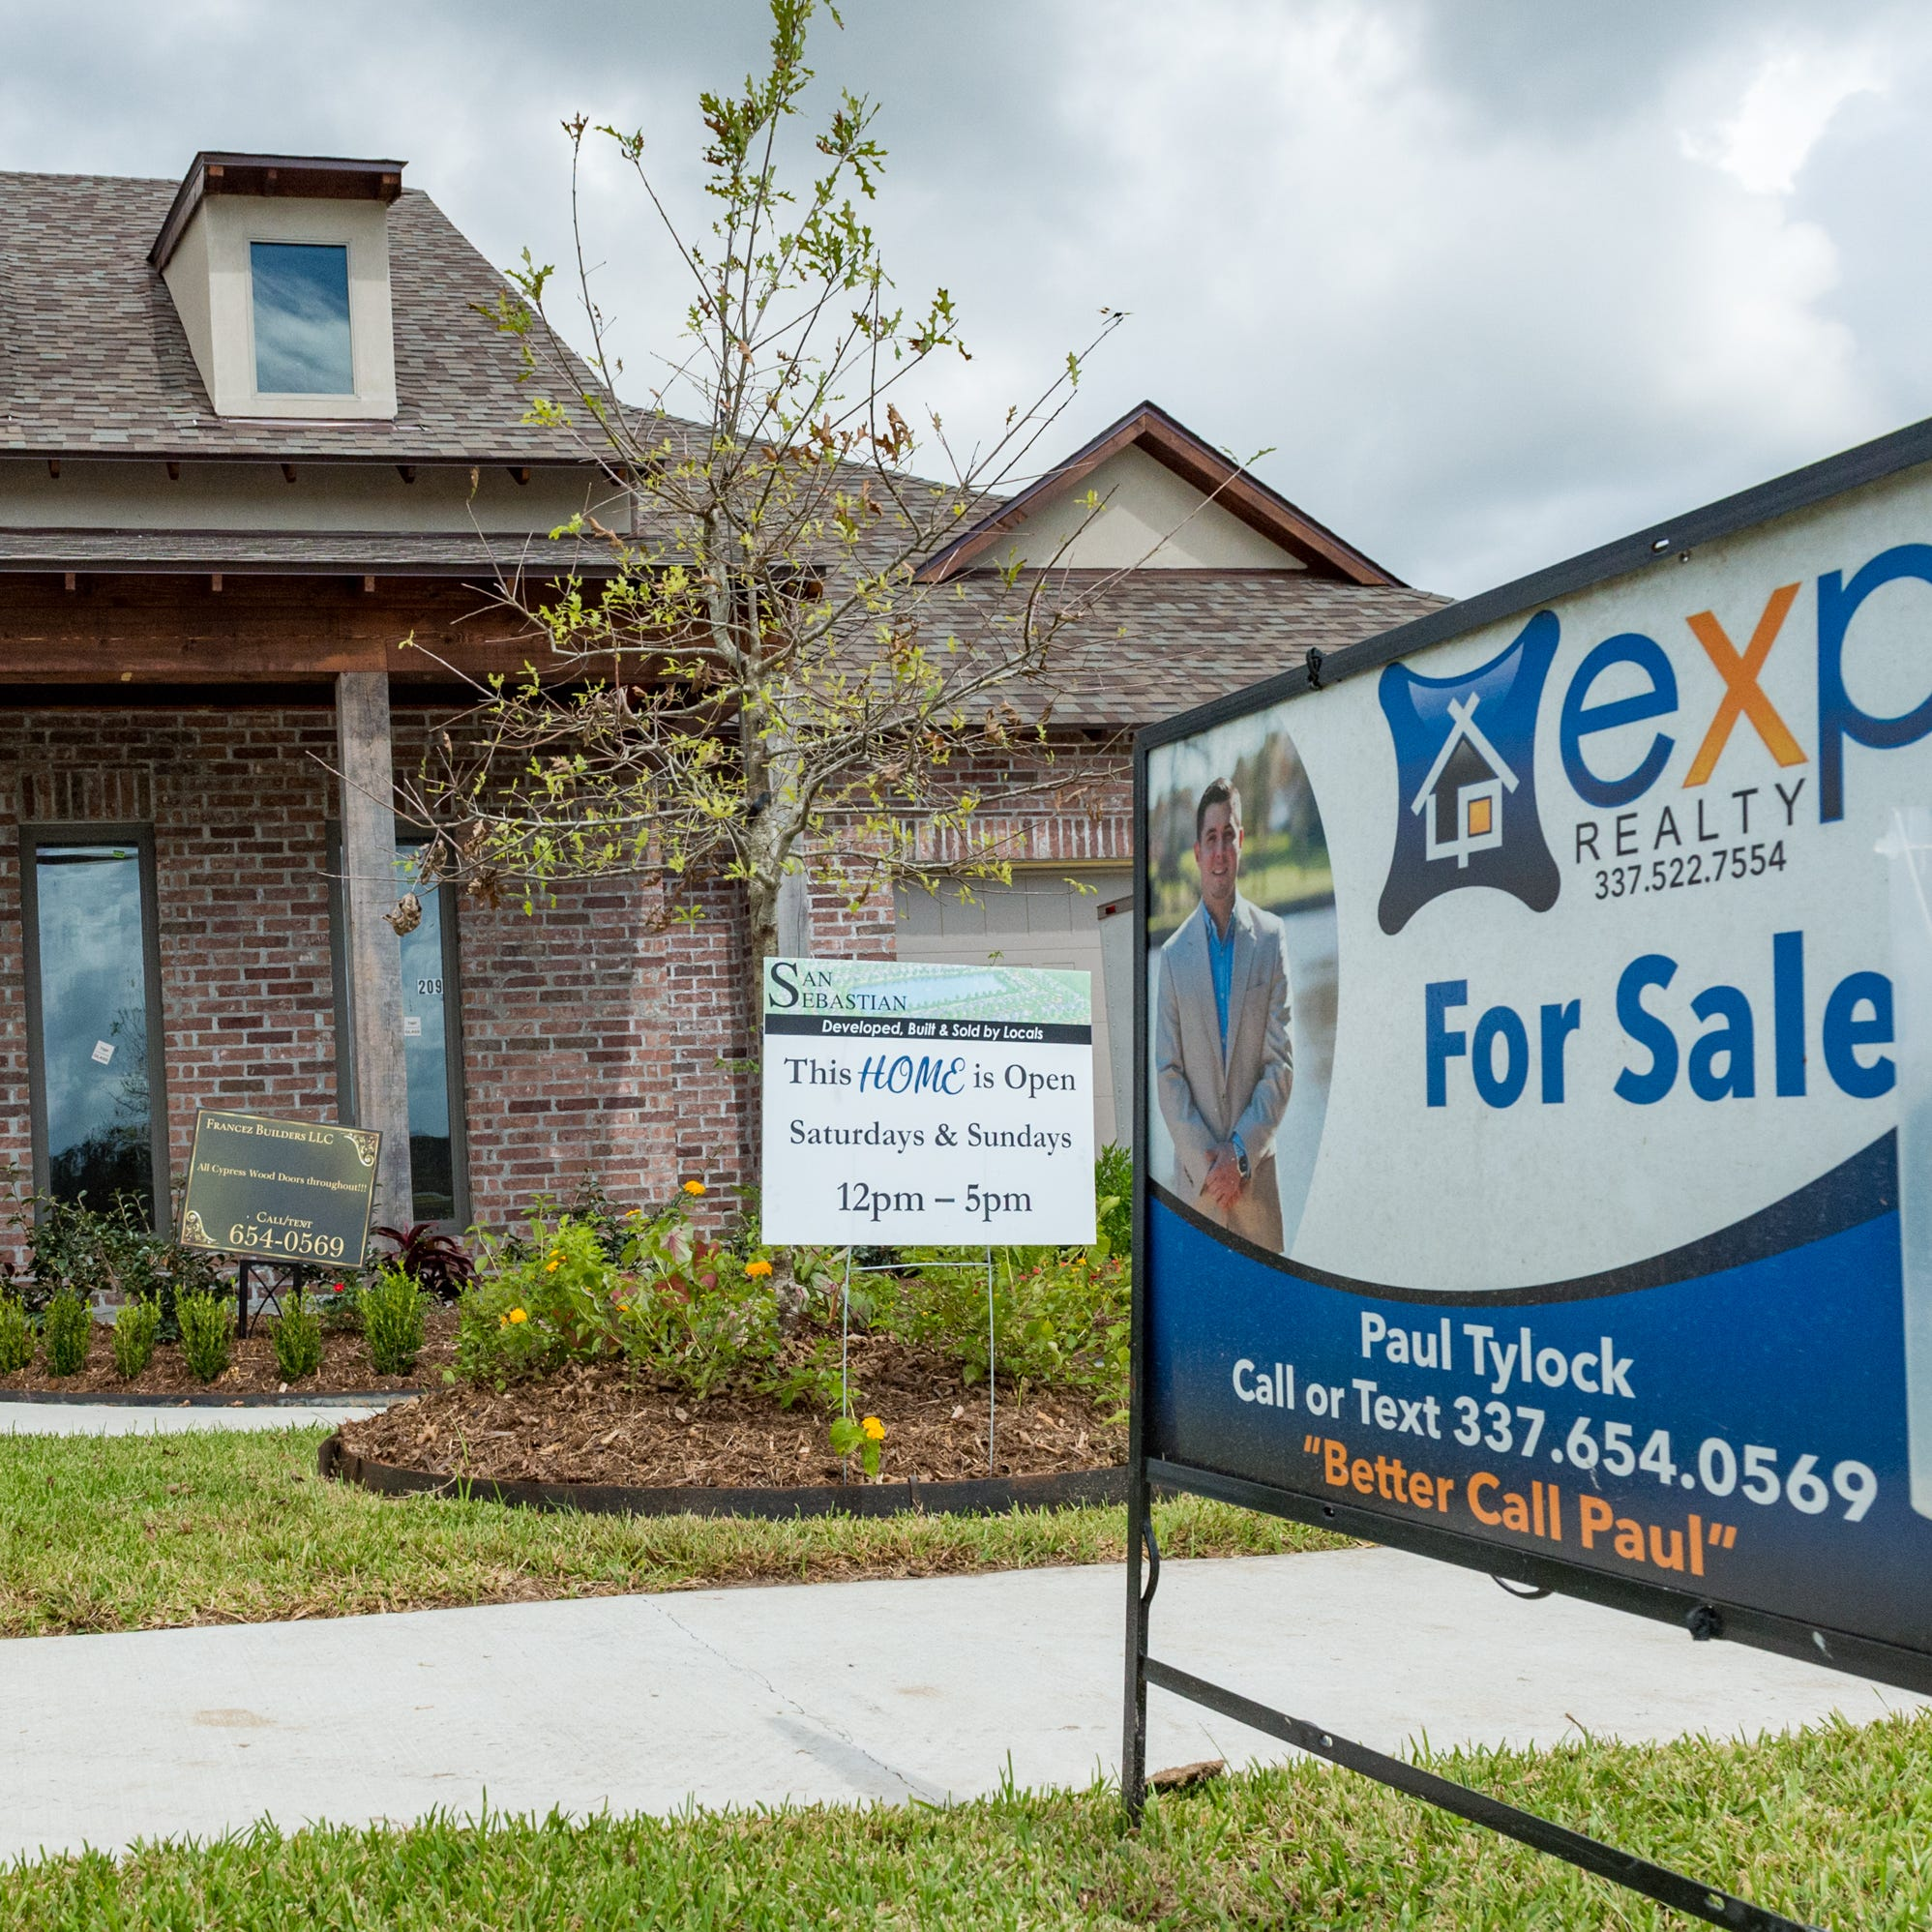 Why Lafayette is one of only a few U.S. cities that will see home and rent prices decline this year